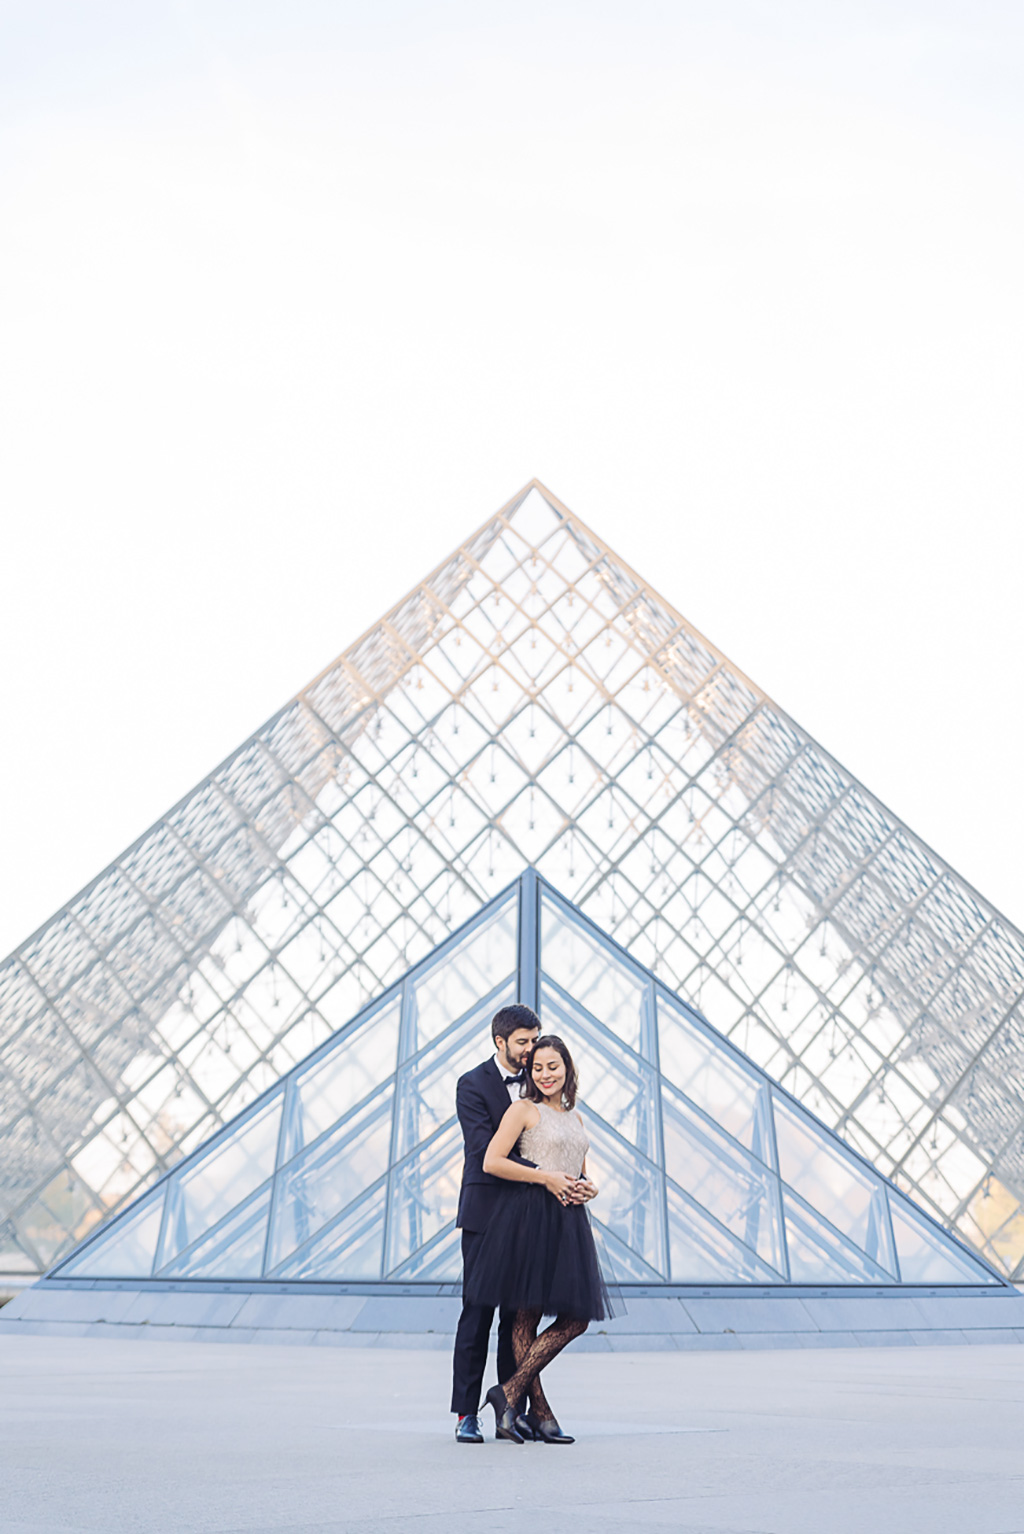 gloria-villa-paris-engagement-photographer-(14)